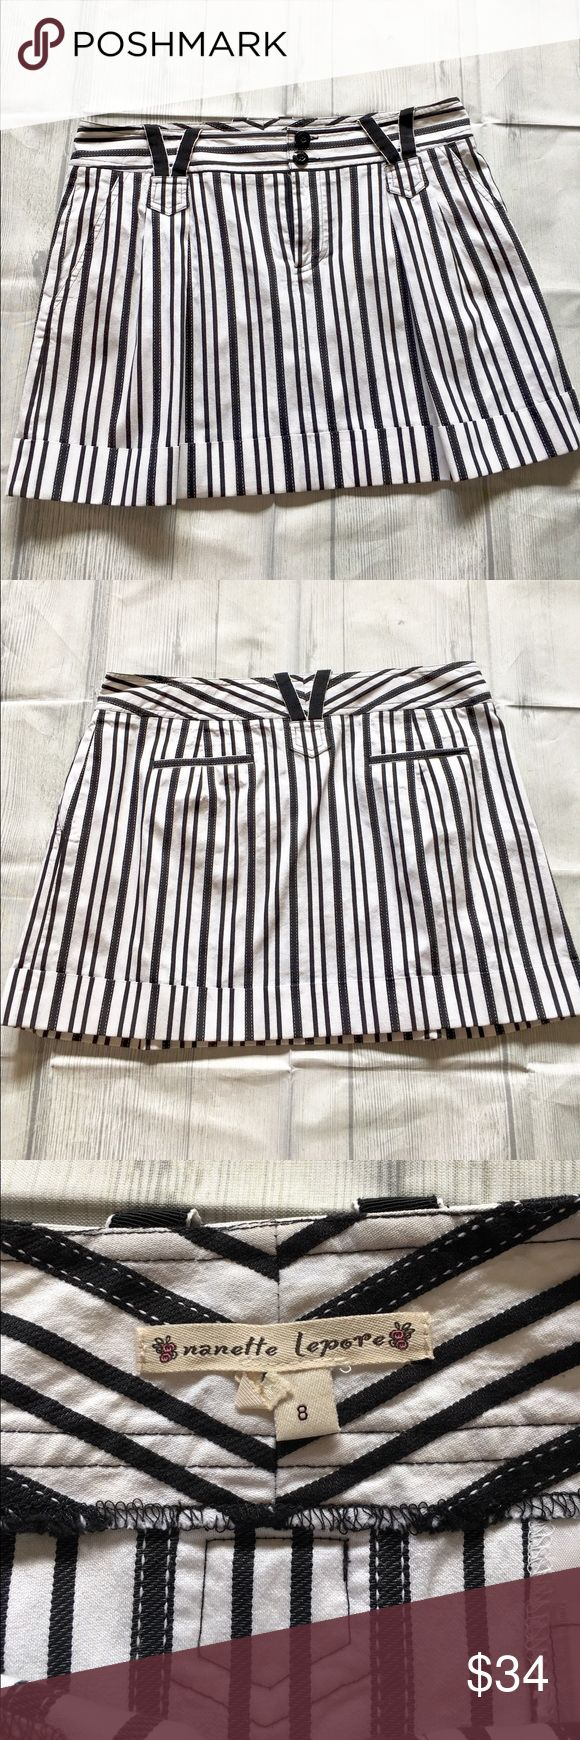 """Nanette Lepore Black and White Mini Skirt Black and white skirt has a zip front with two buttons. Diagonal front pockets and belt loops complete the look. Measures 17""""inches across the top and 15.5""""inches long Dry Clean Nanette Lepore Skirts Mini"""